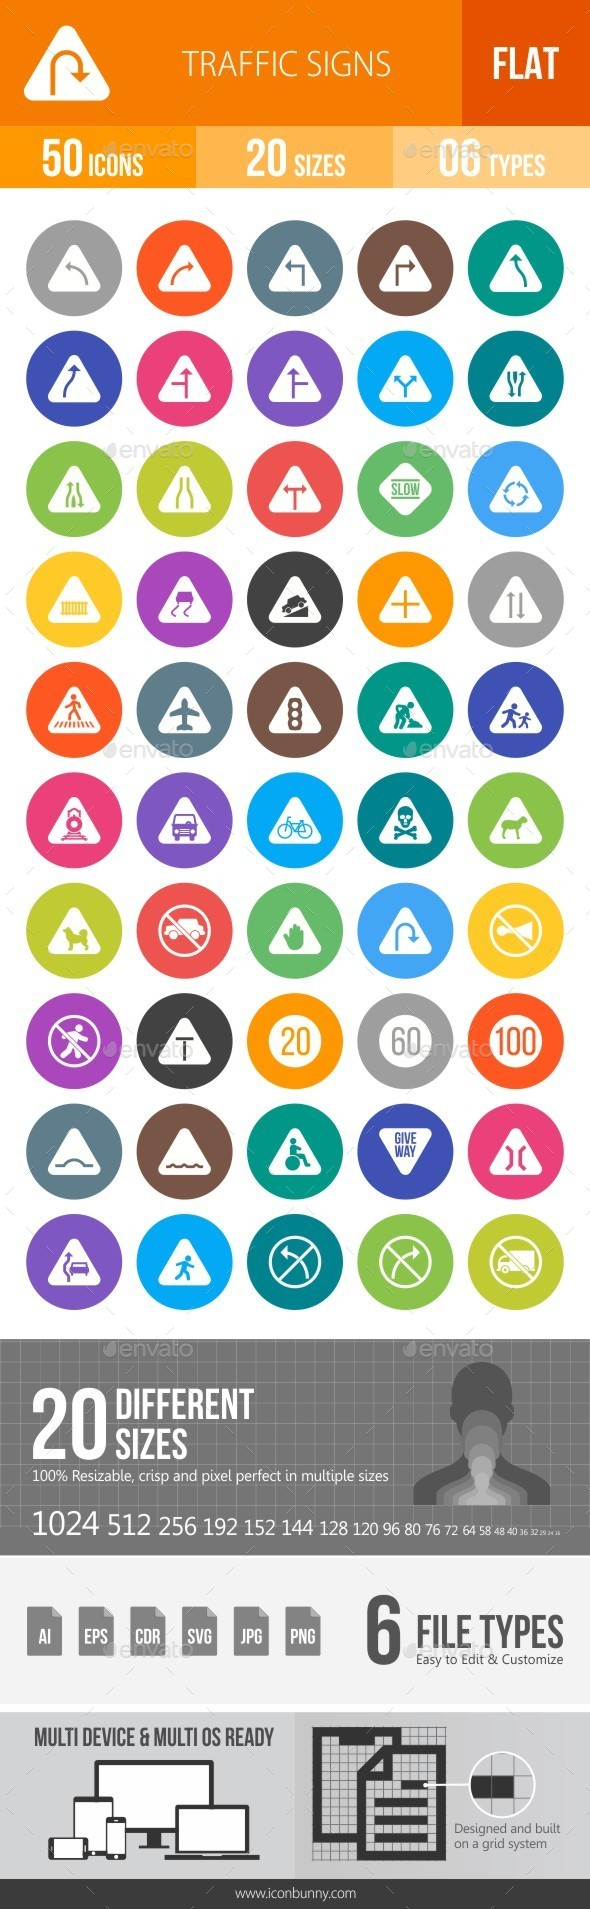 Traffic Signs Flat Round Icons - Icons